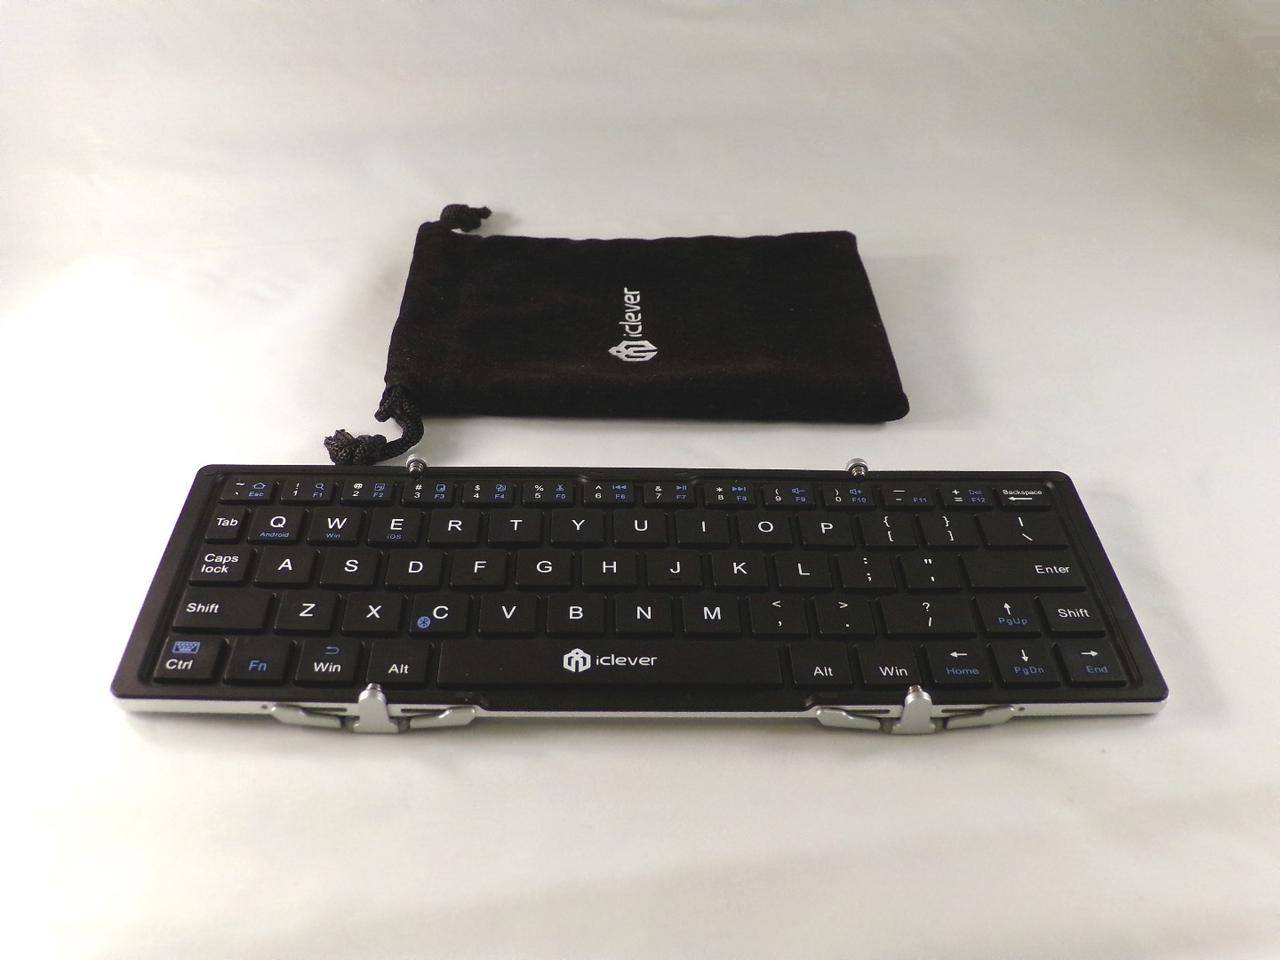 The iClever IC-BK 03 keyboard comes with a plush cloth carry case